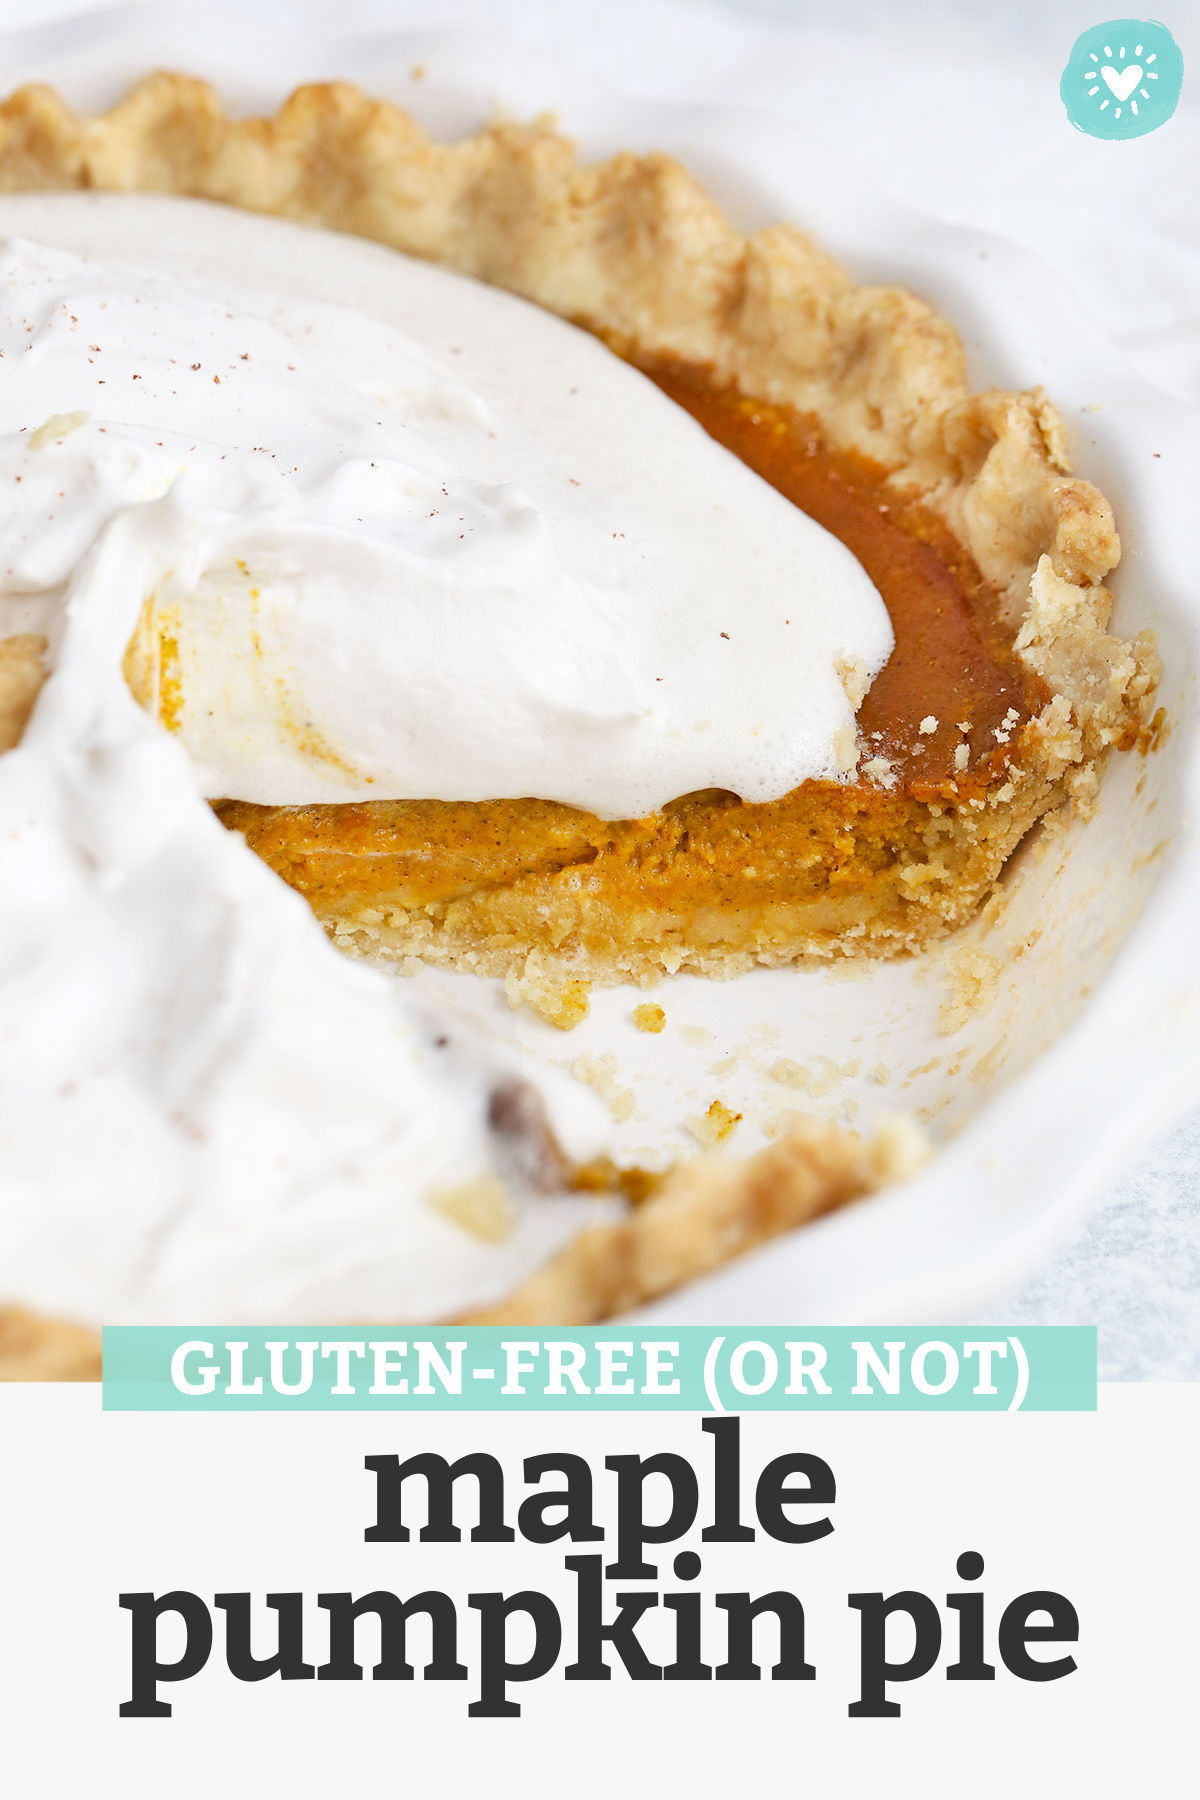 Maple Pumpkin Pie - This naturally sweetened pumpkin pie recipemight be the best pumpkin pie I've ever had. Perfectly spiced and so delicious! (Gluten free, dairy free, paleo-friendly) // paleo pumpkin pie recipe // dairy free pumpkin pie recipe // gluten free pumpkin pie recipe // #pumpkinpie #pumpkindessert #pumpkin #glutenfree #paleofriendly